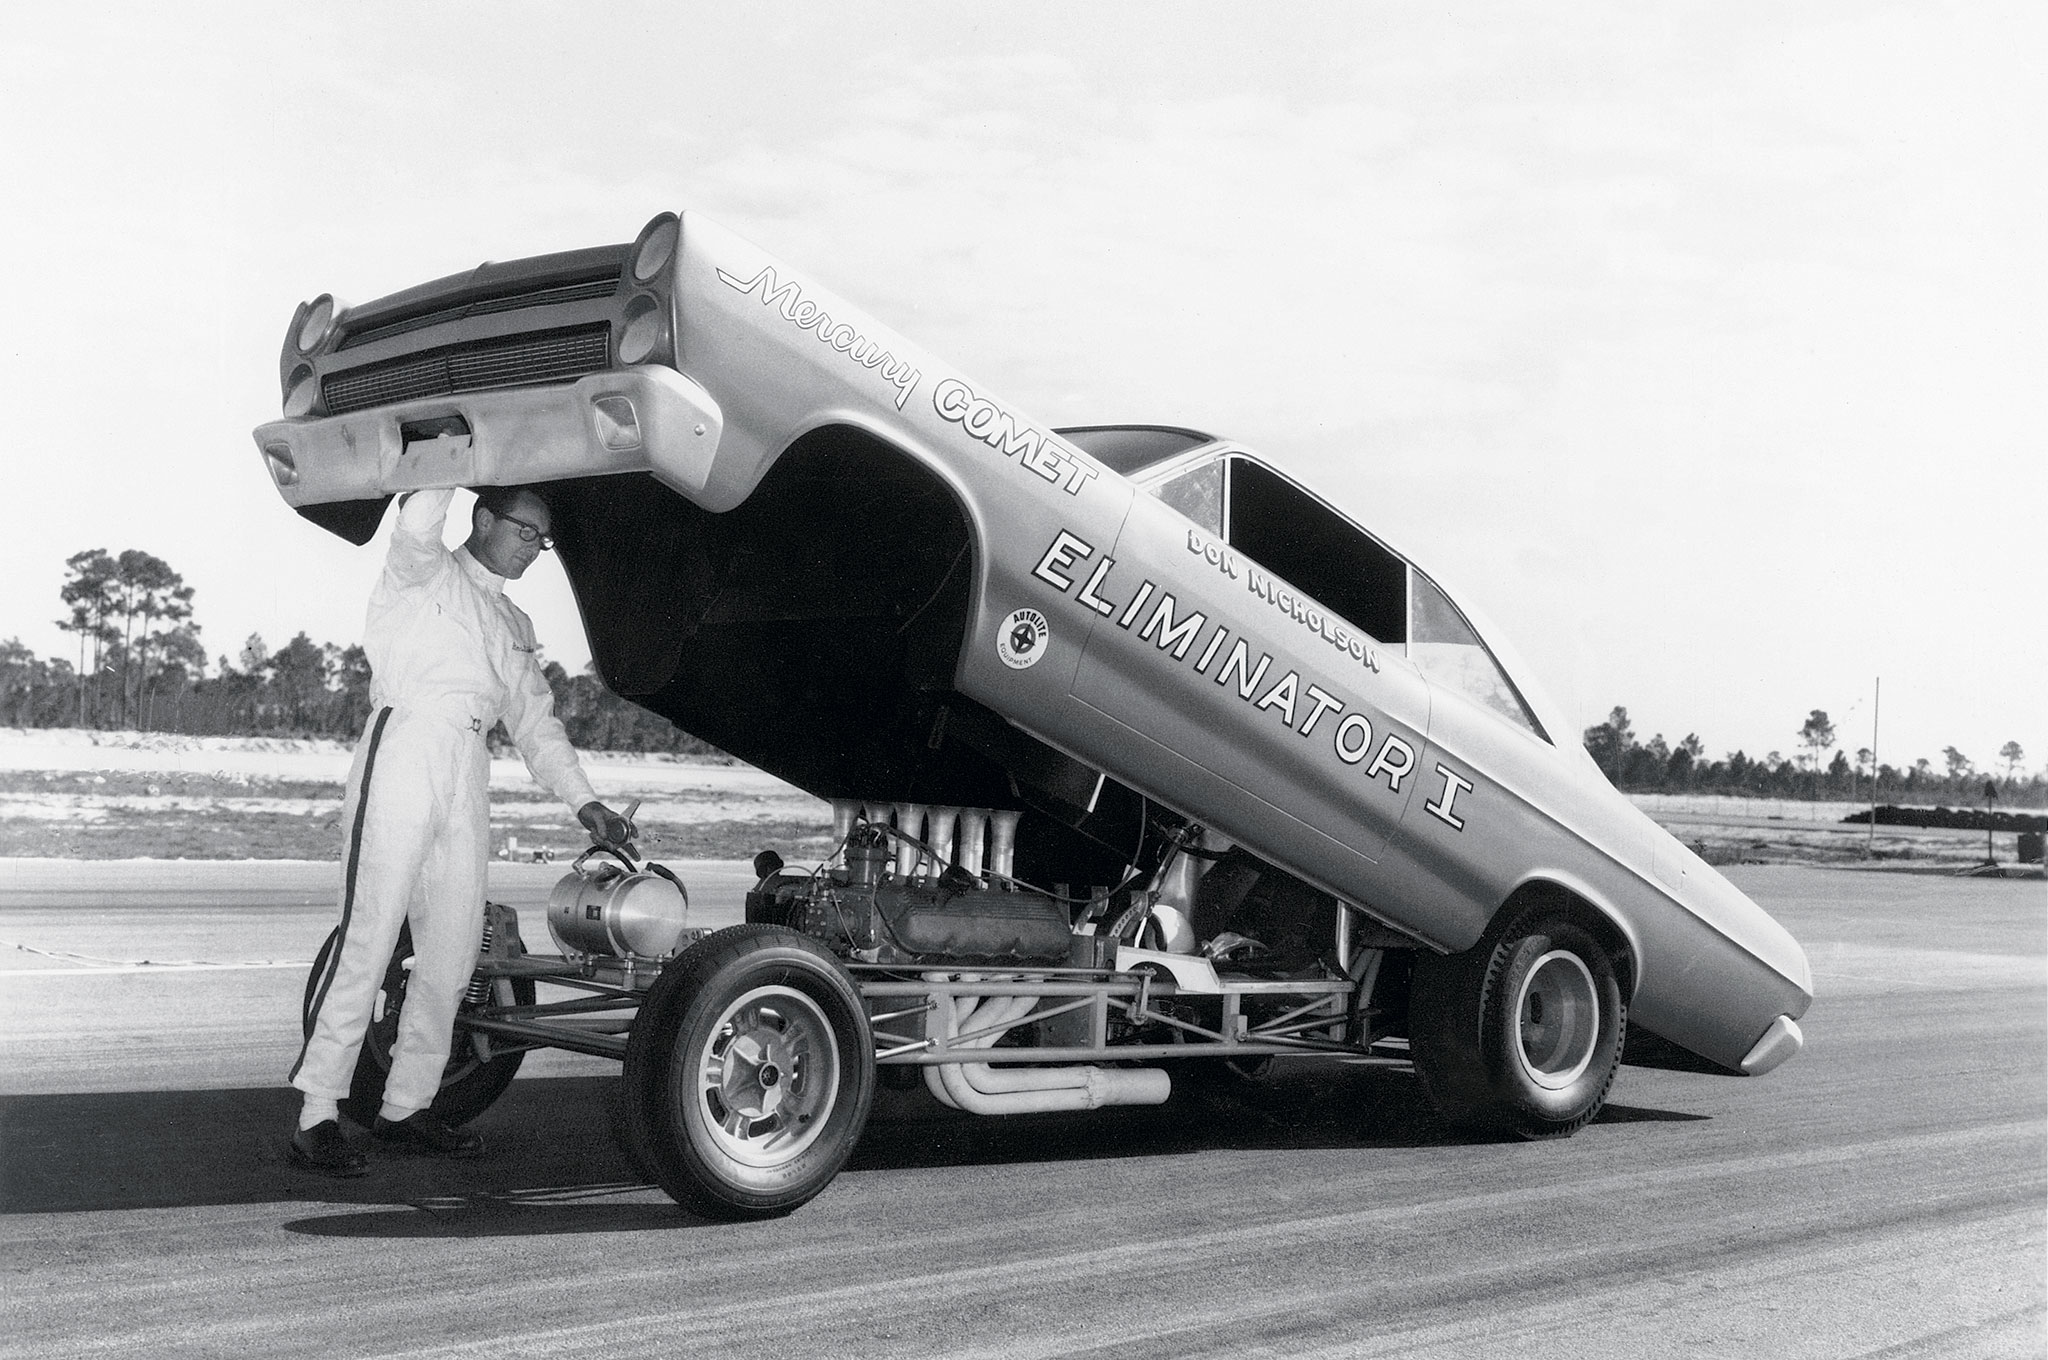 In August 1966, Dyno drove his injected, SOHC-powered Eliminator I Mercury Comet to an 8.29, 170.12-mph pass against Maynard Rupp at National Trail Raceway in Columbus, Ohio. At the time, it was the fastest pass by a stock-bodied car in NHRA history. Dyno was virtually undefeated in this car for the entire season.